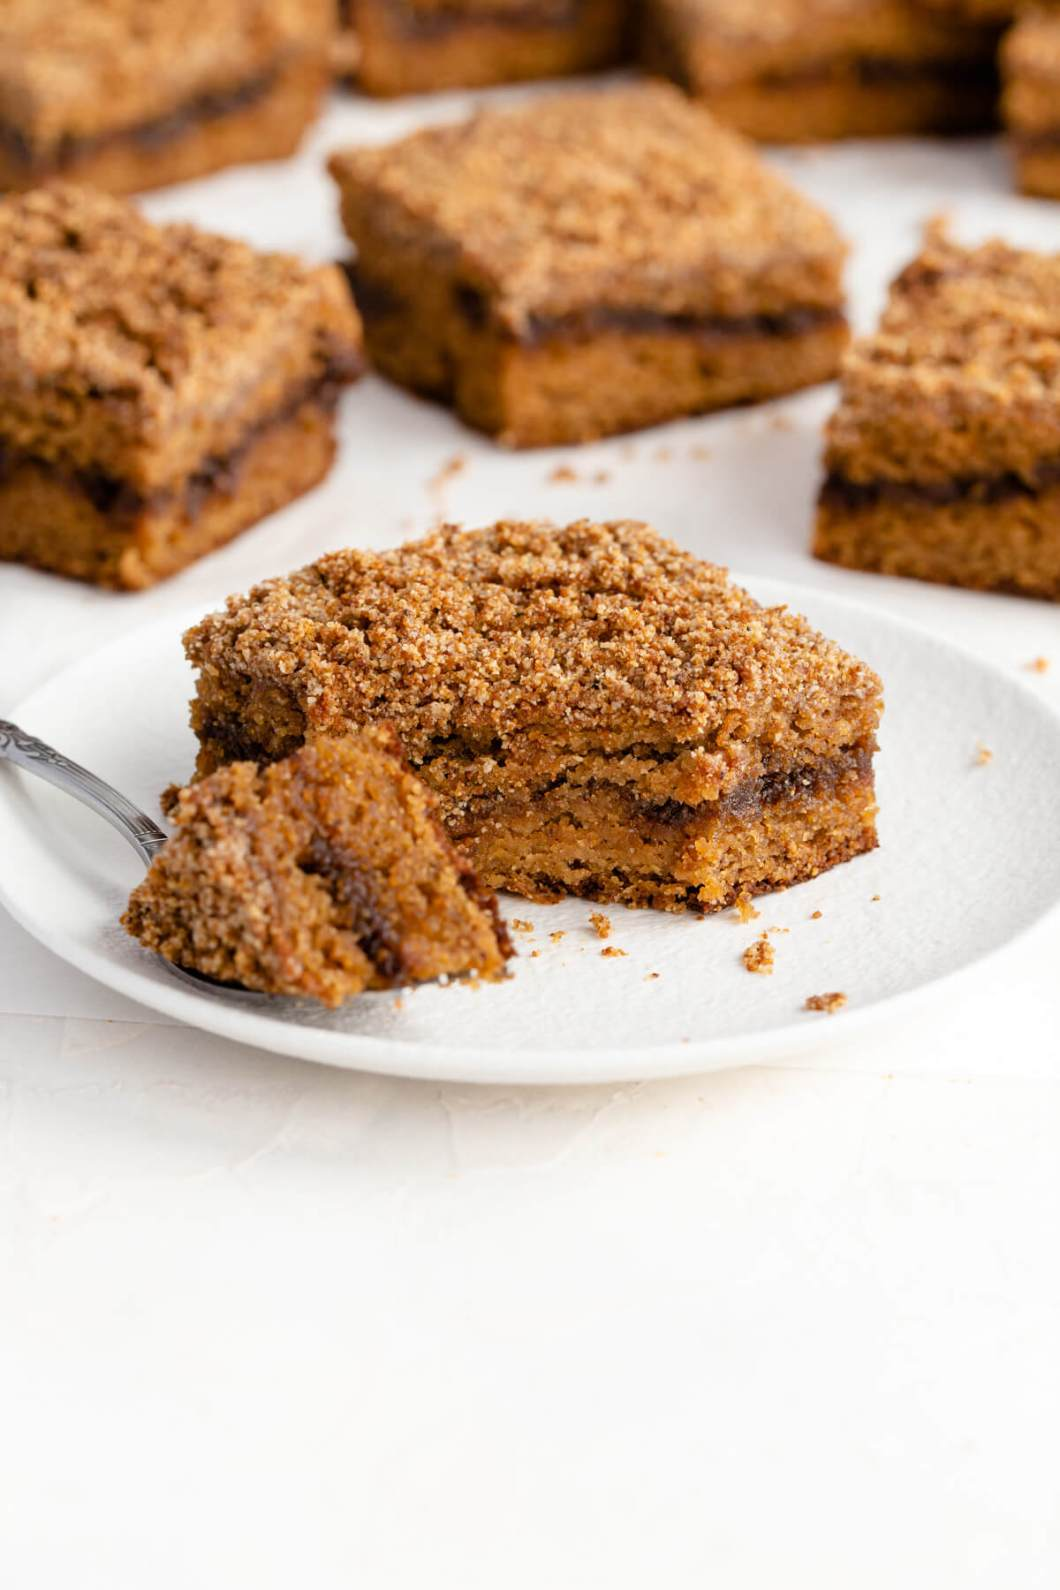 inside fluffy and buttery texture of a piece of healthy cinnamon swirl coffee cake with a crumble topping